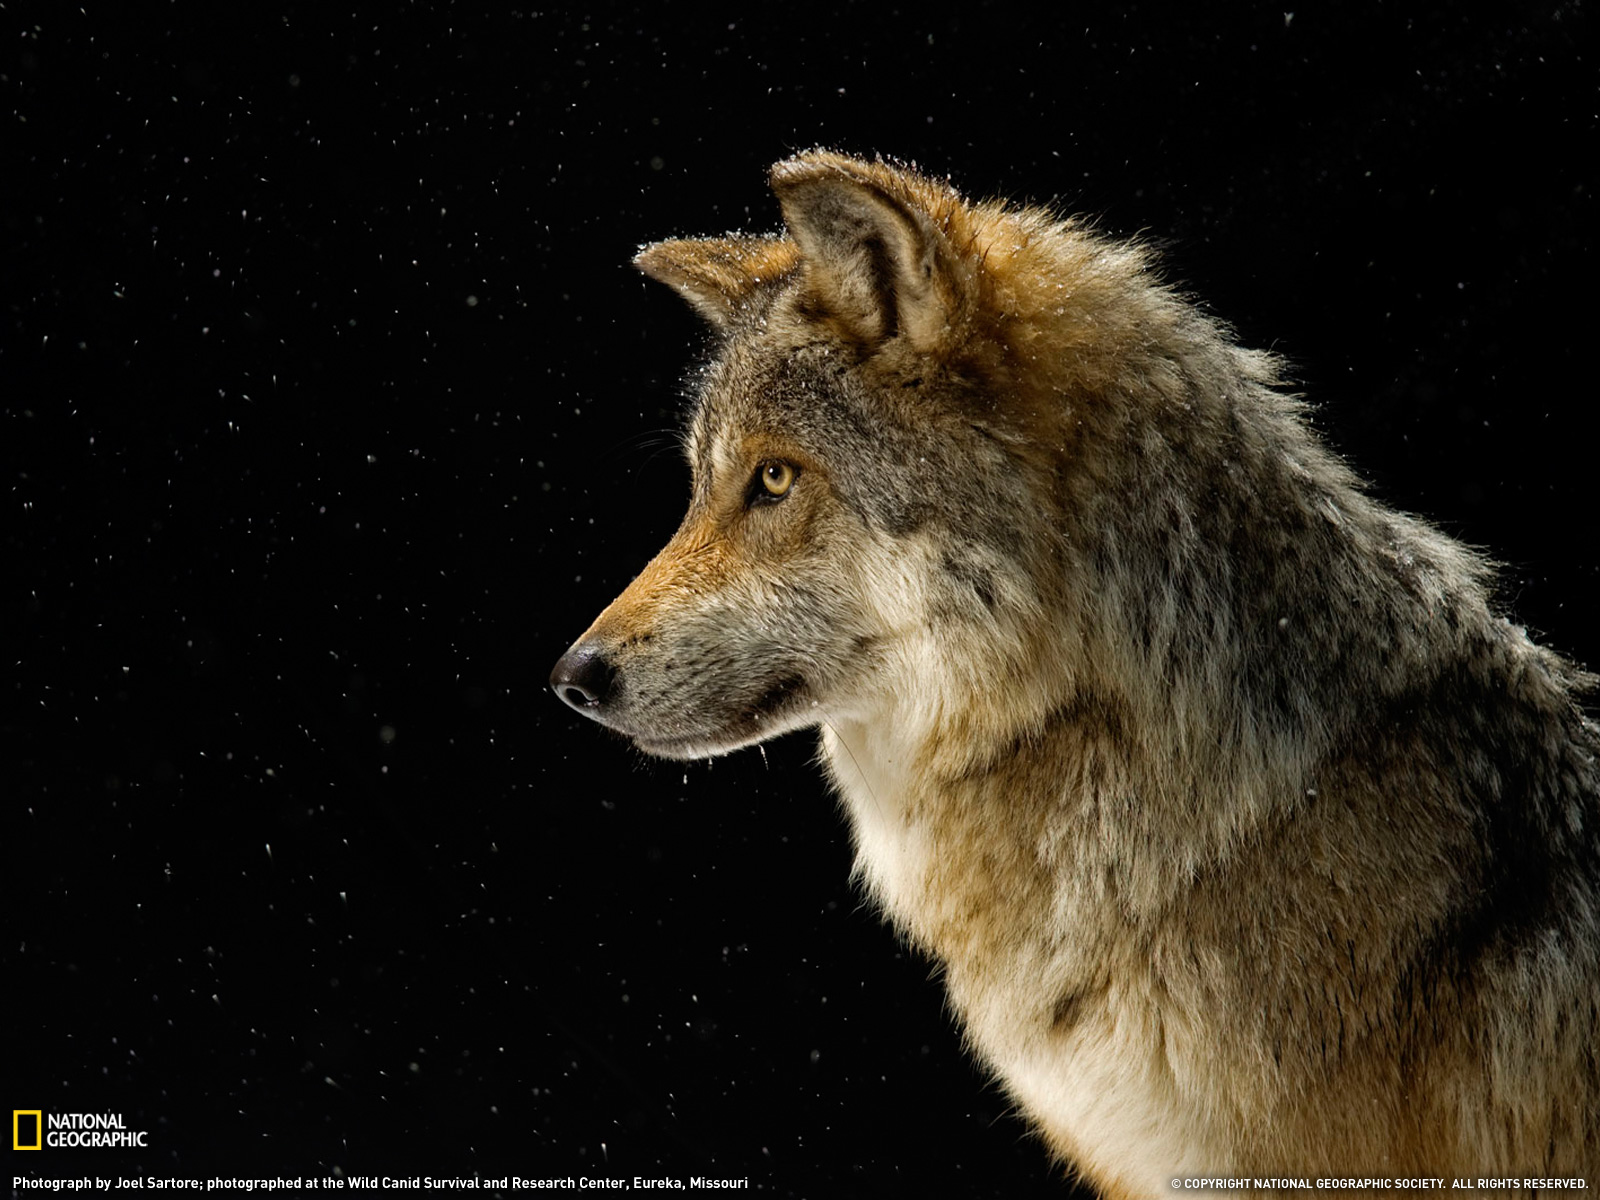 Nat geo wild wallpapers hd full hd pictures - National geographic wild wallpapers ...